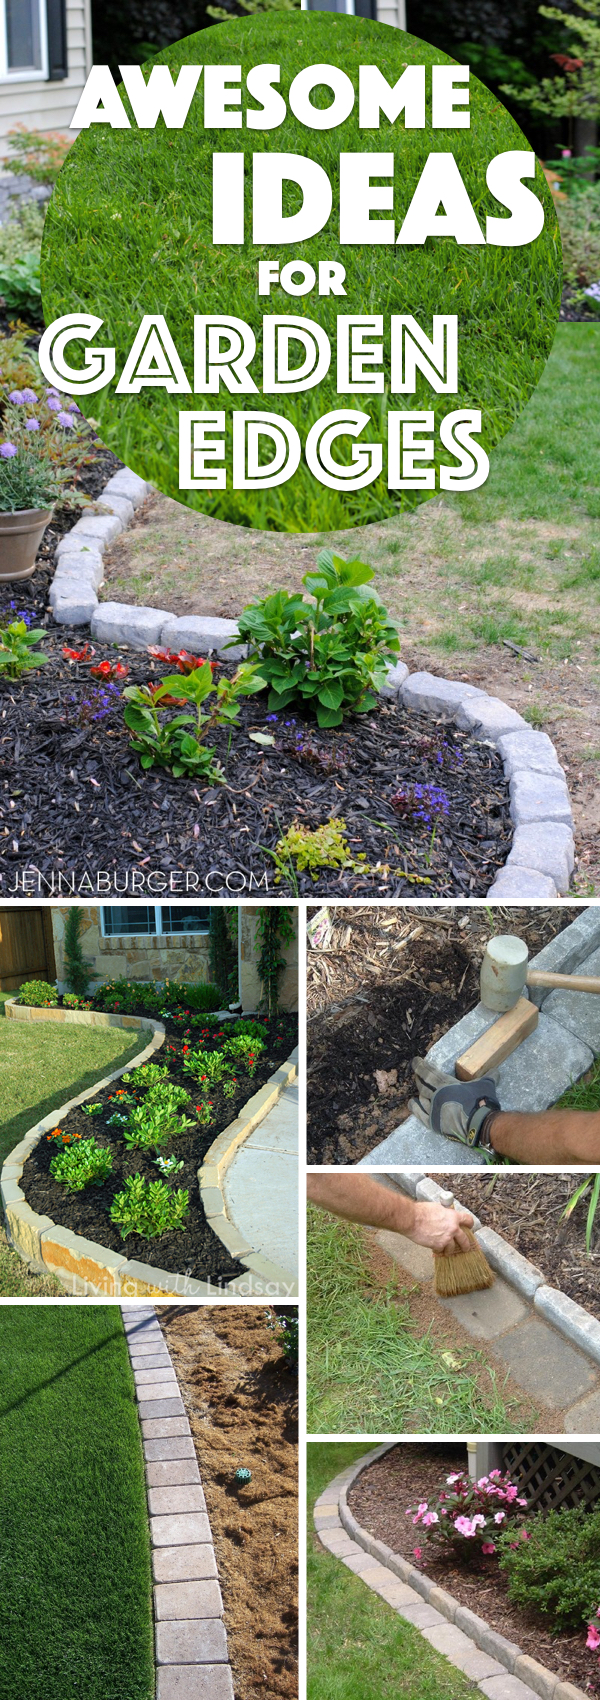 Charmant Awesome Ideas For Garden Edges